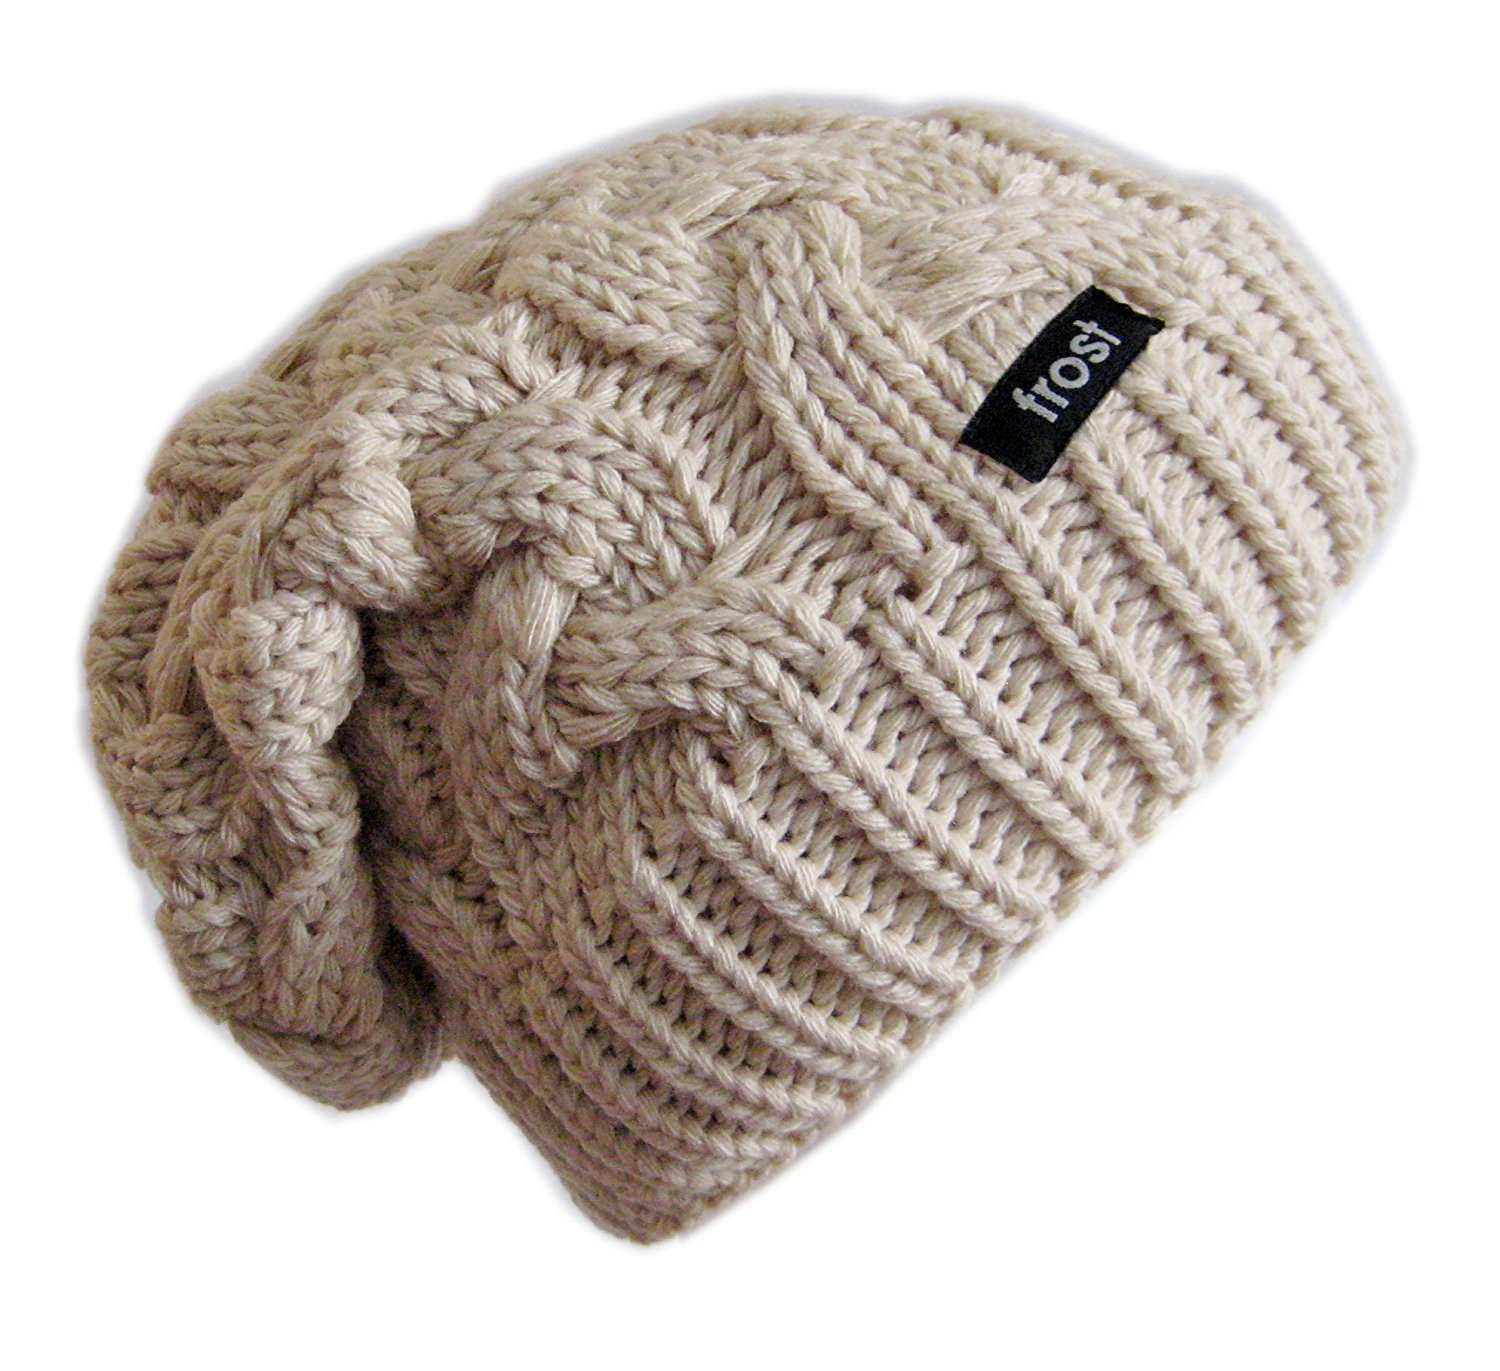 19d27df5 Warm Chunky Soft Slouchy Beanie Cable Knit SKully Hat Frost Hats M 179  Beige at Amazon ...